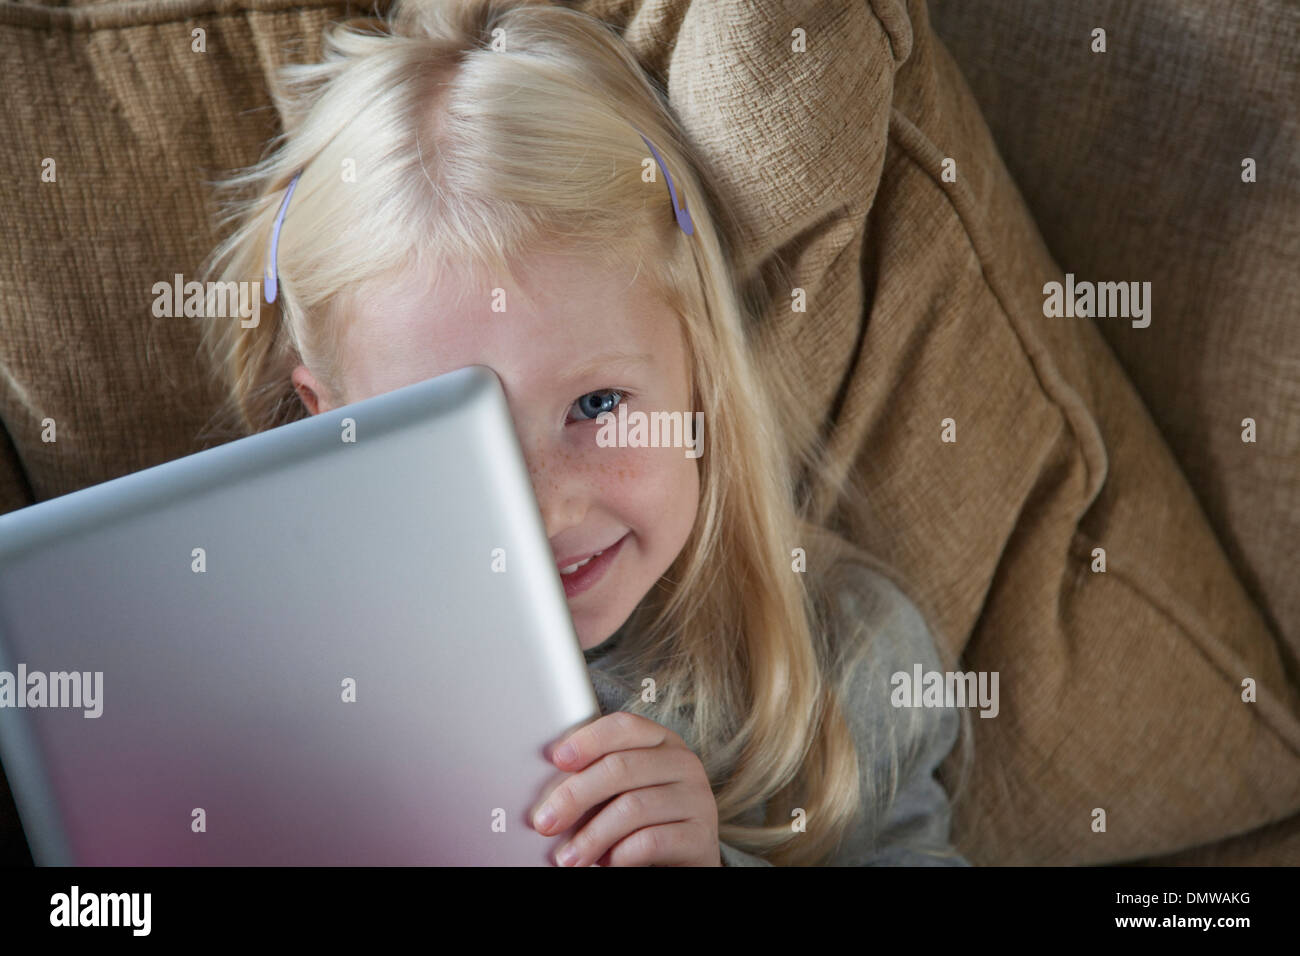 A young girl holding a silver laptop in front of her face. - Stock Image